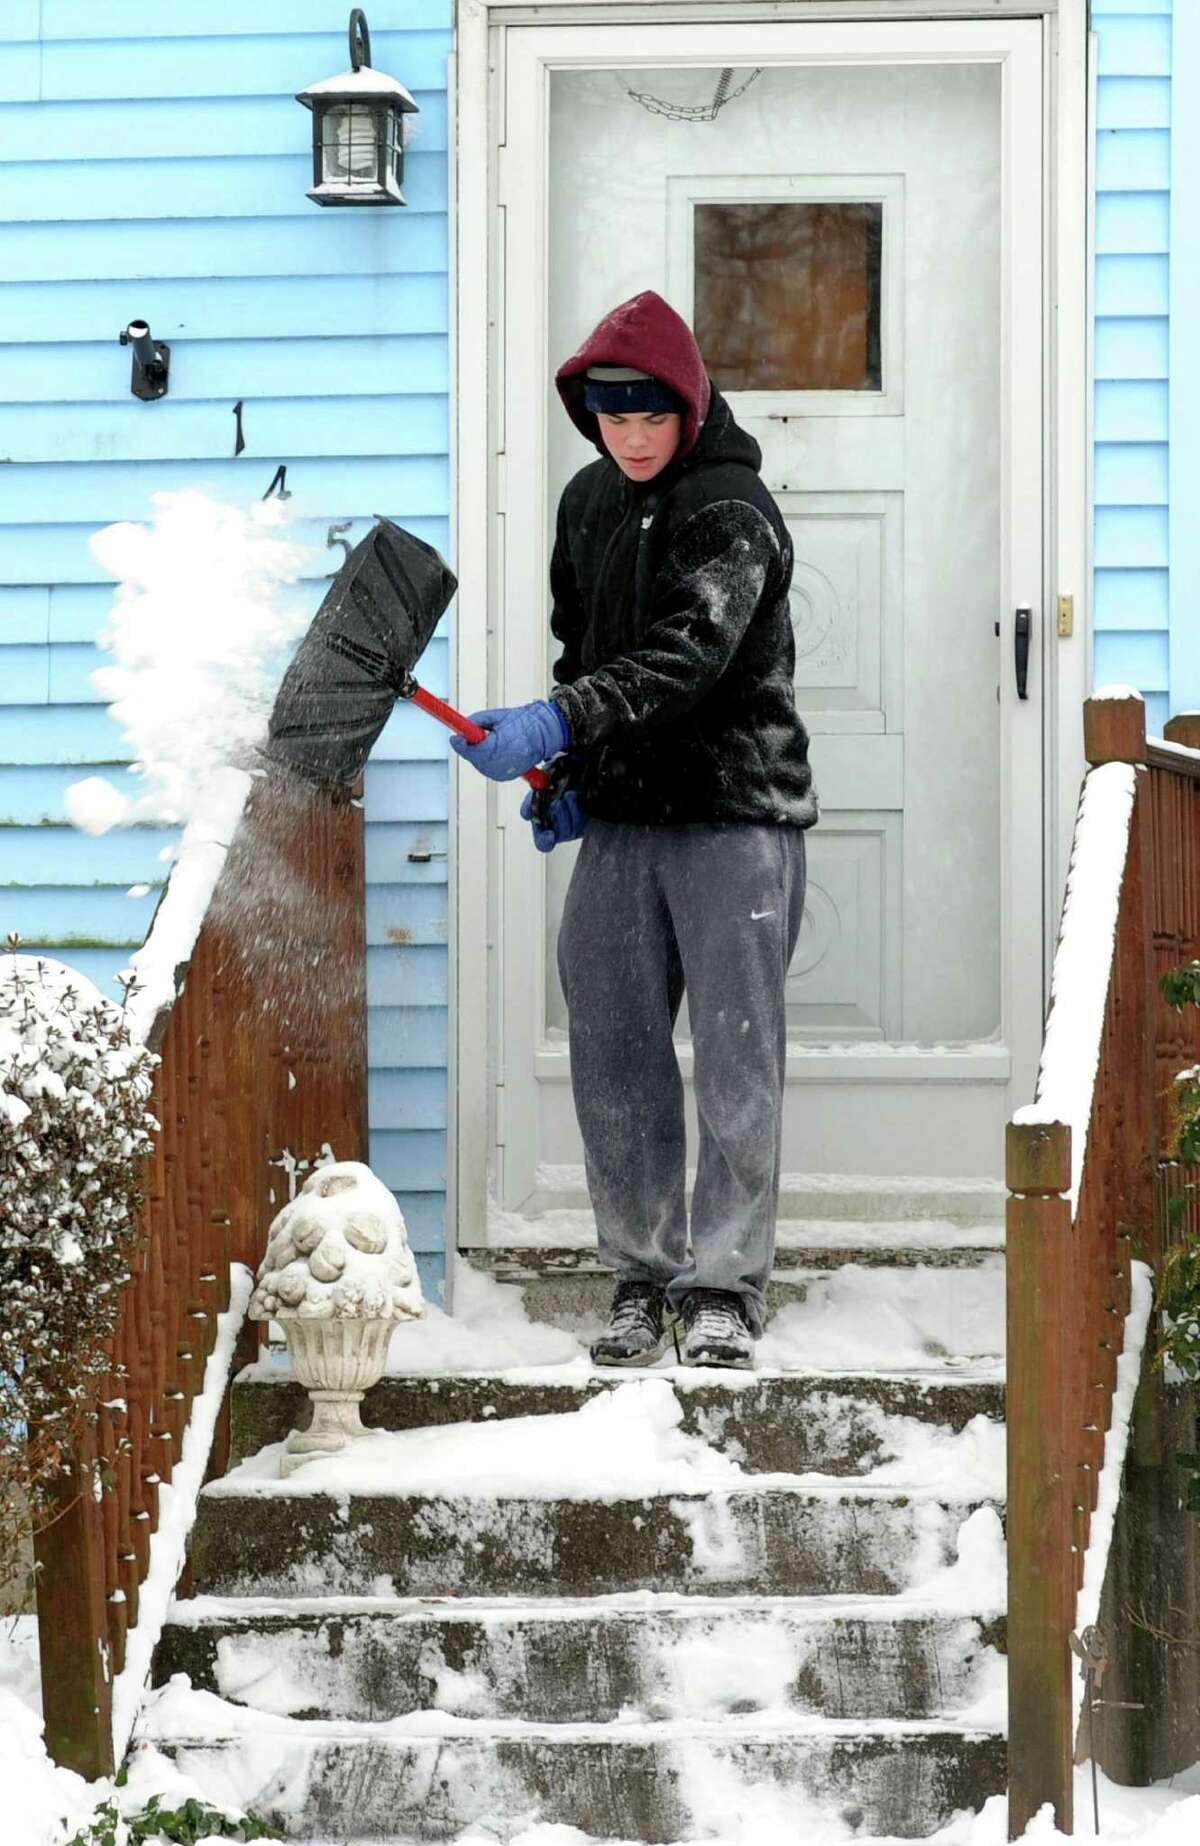 Devin Thomas clears the front porch of his Tuckahoe Lane home in Fairfield, Conn. on Friday, Jan. 3, 2014. An overnight storm dumped about 6 inches of snow in the area.